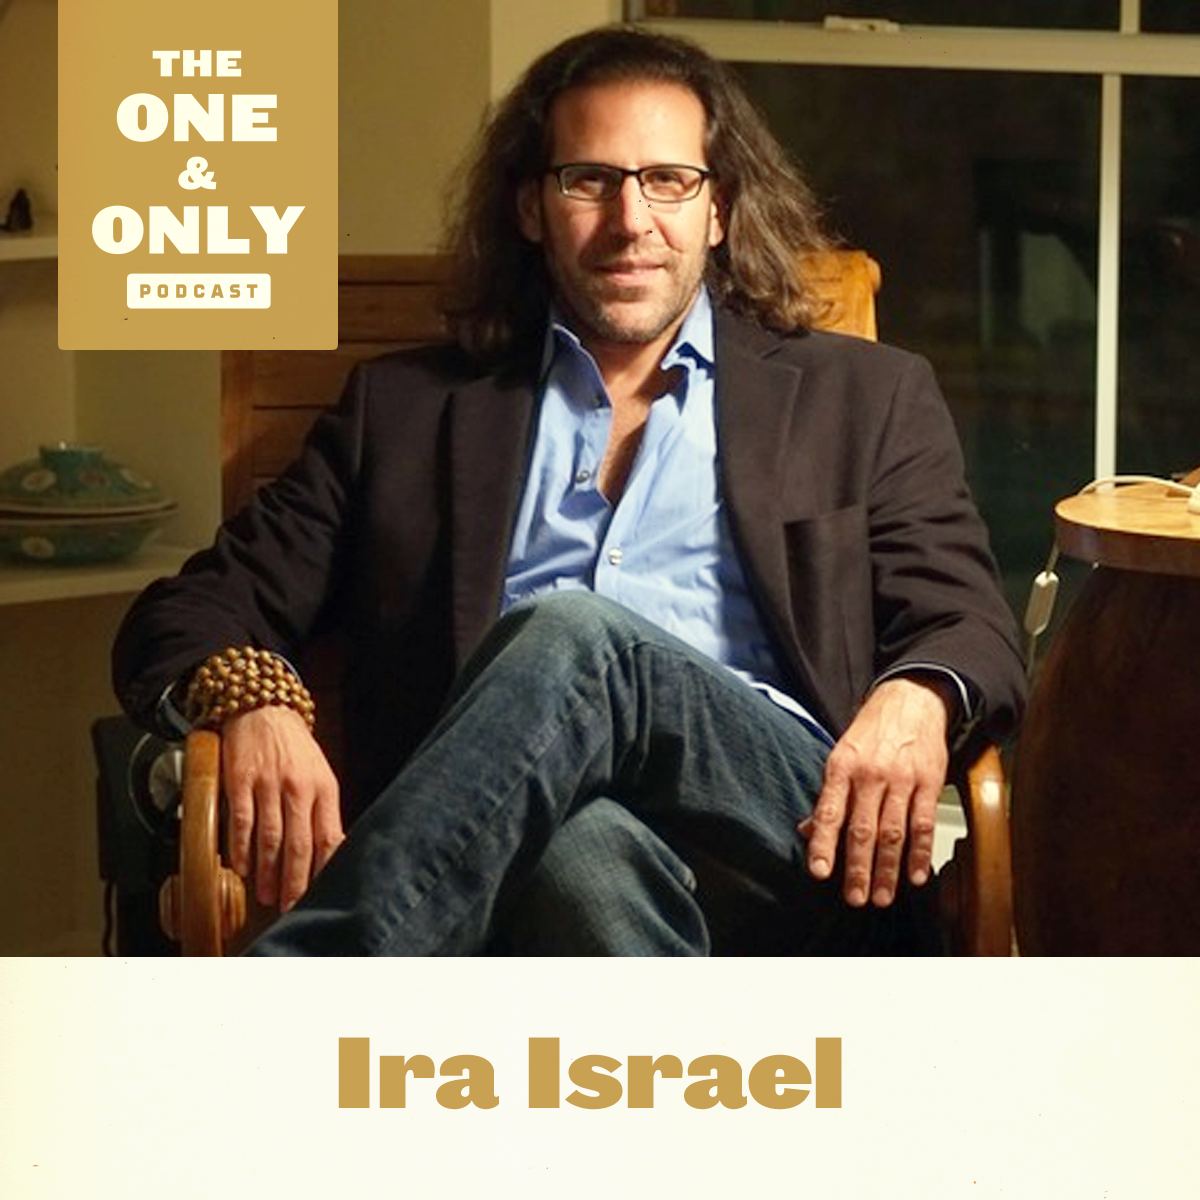 Ira Israel on The One & Only with Mark Shapiro